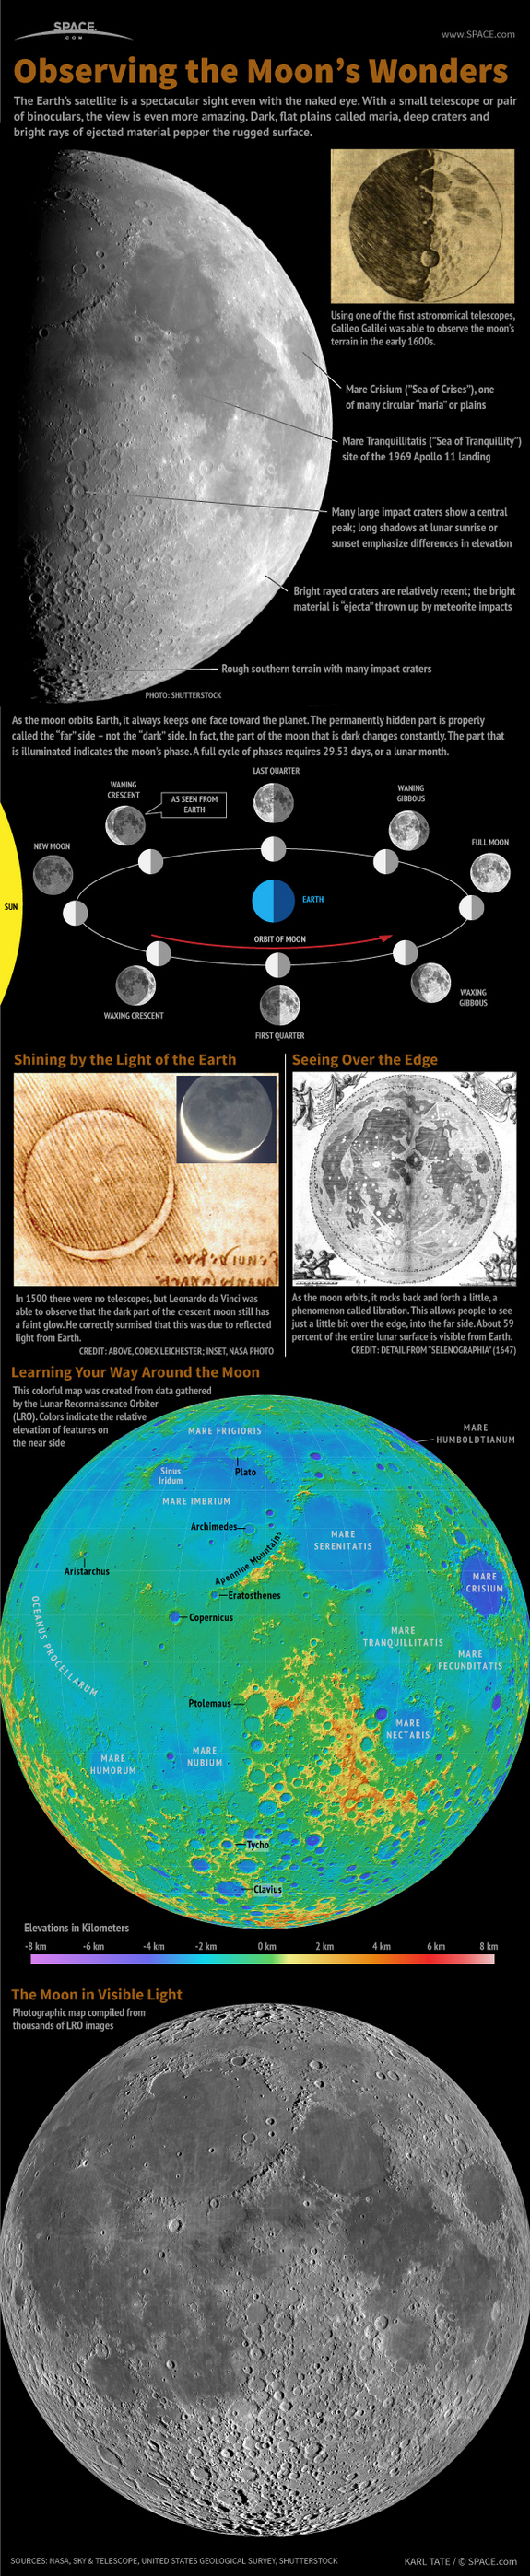 Moon Observation Map-Infographic